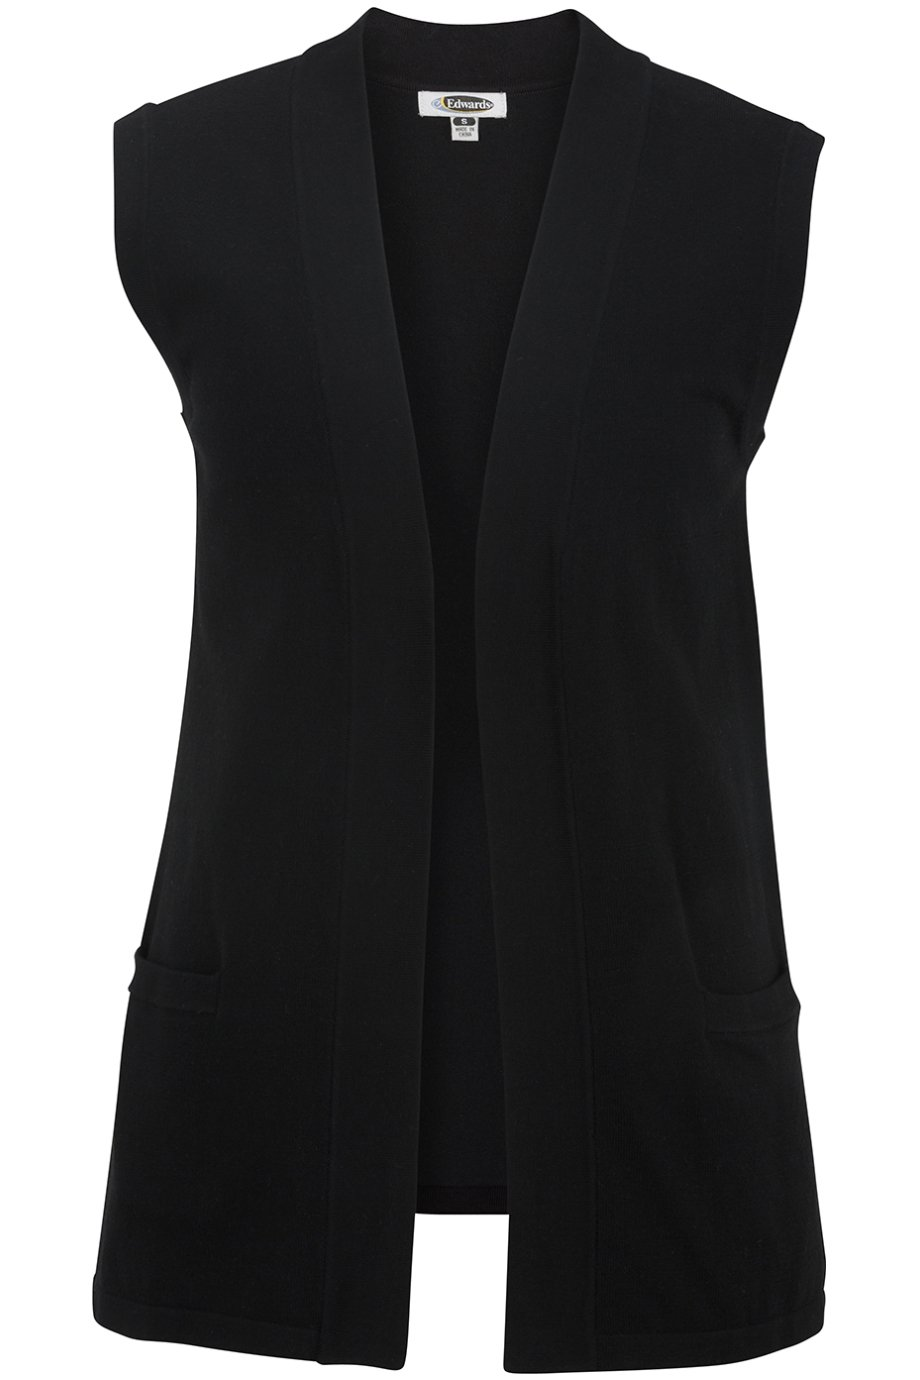 Edwards Women's Open Cardigan Sweater Vest, Black, XXX-Large by Edwards Garment (Image #1)